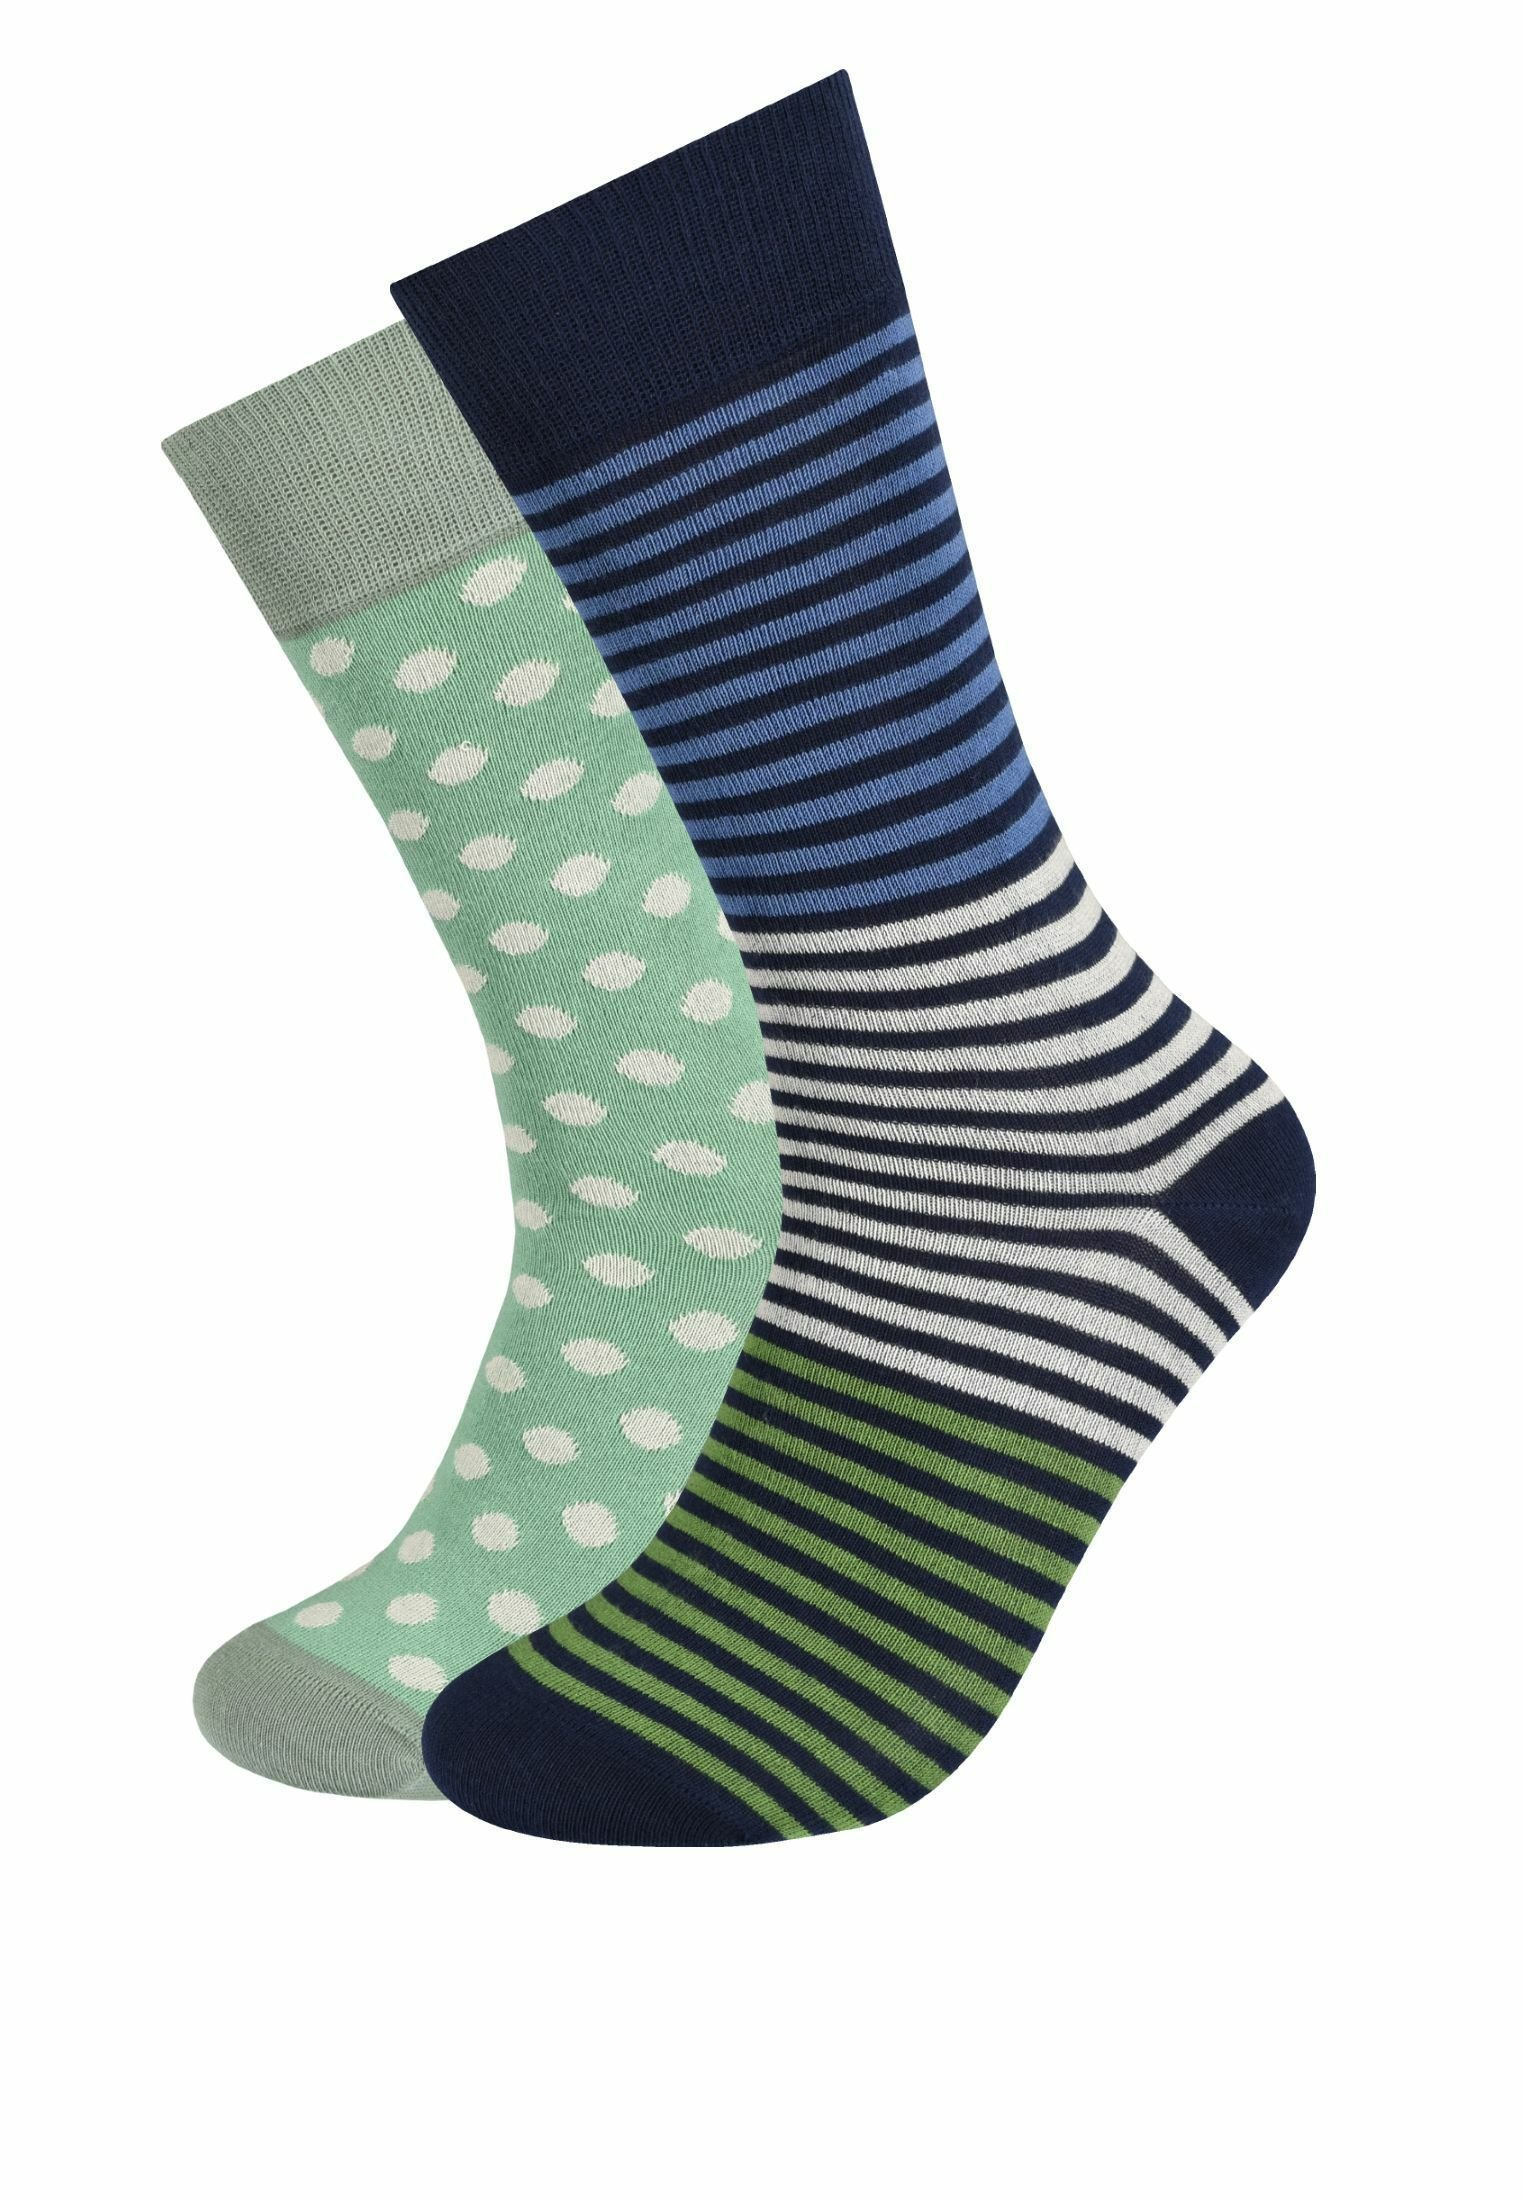 Femme 2 pack - Chaussettes